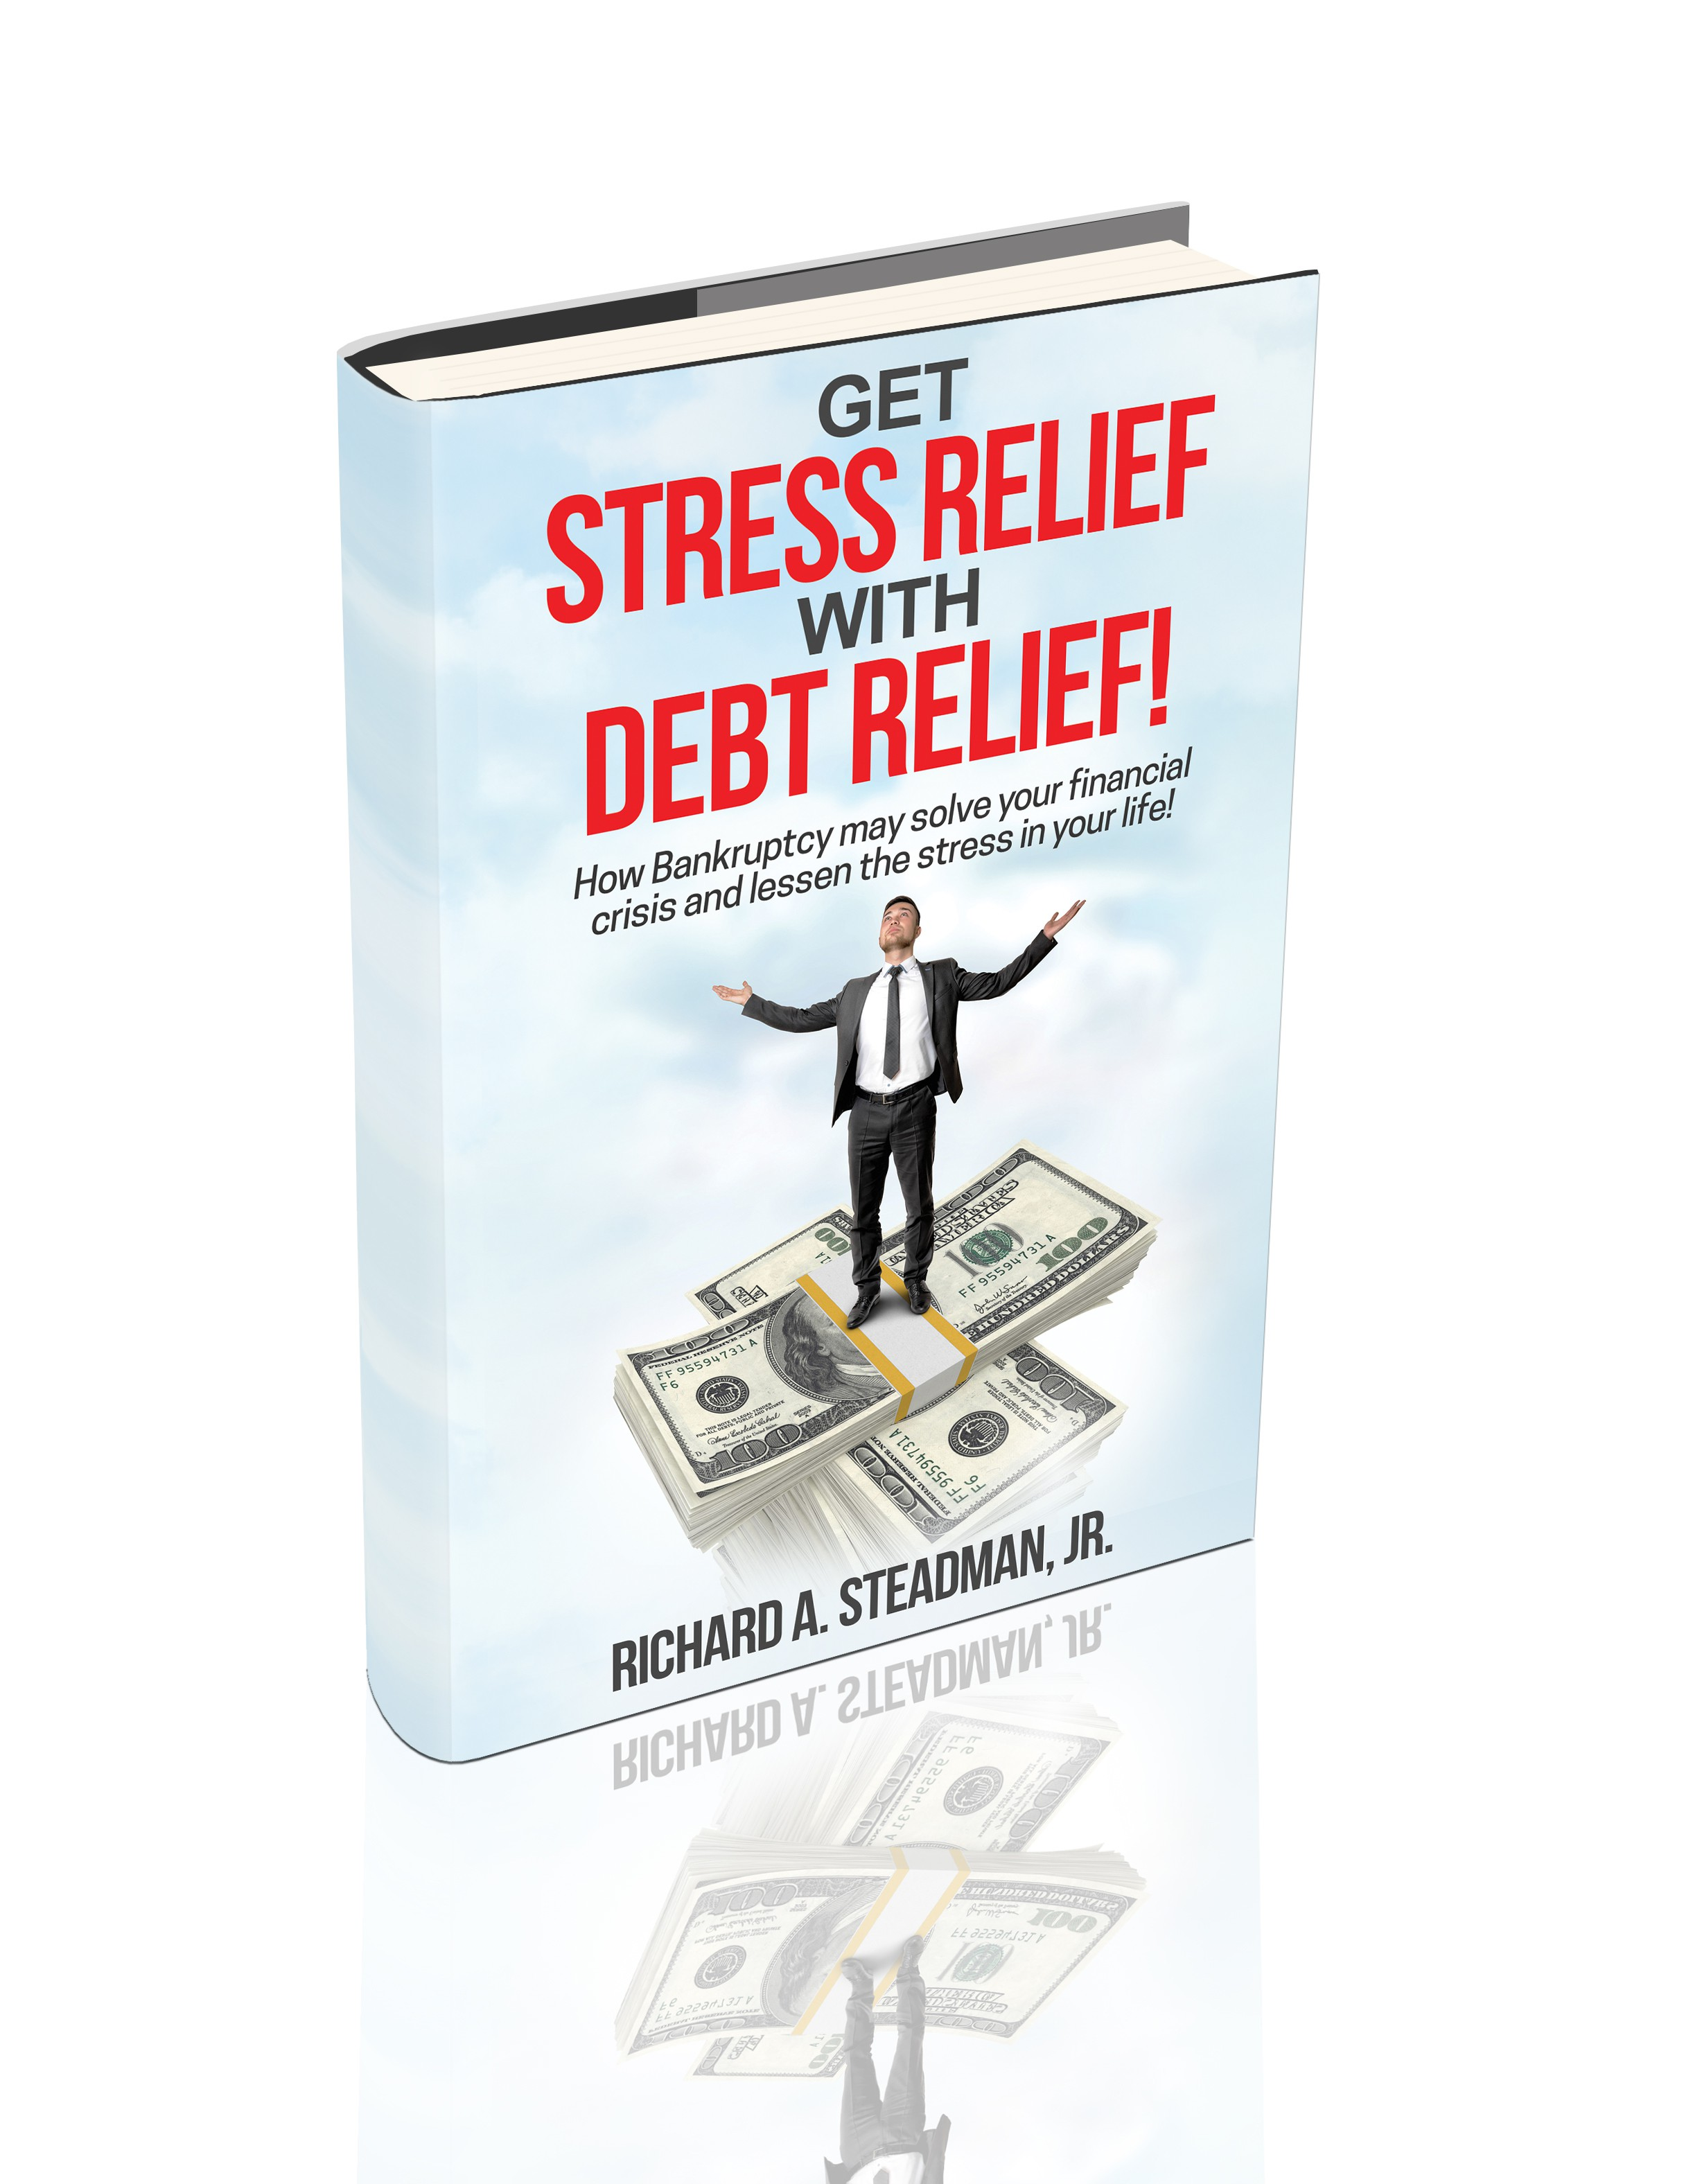 Design Book Cover for Bankruptcy Attorney providing Stress Relief